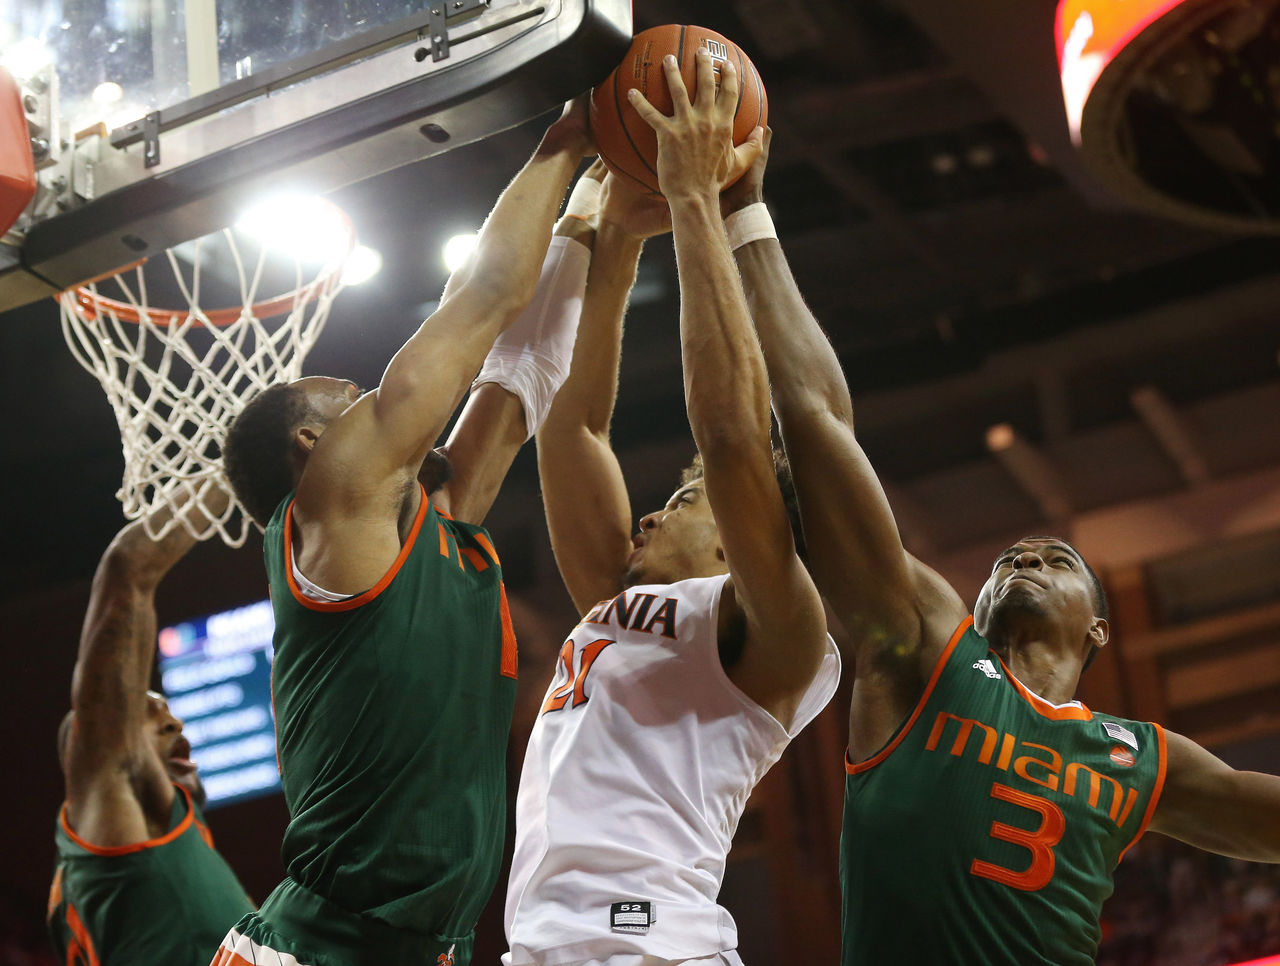 Cropped_2017-02-21t024646z_580097891_nocid_rtrmadp_3_ncaa-basketball-miami-at-virginia